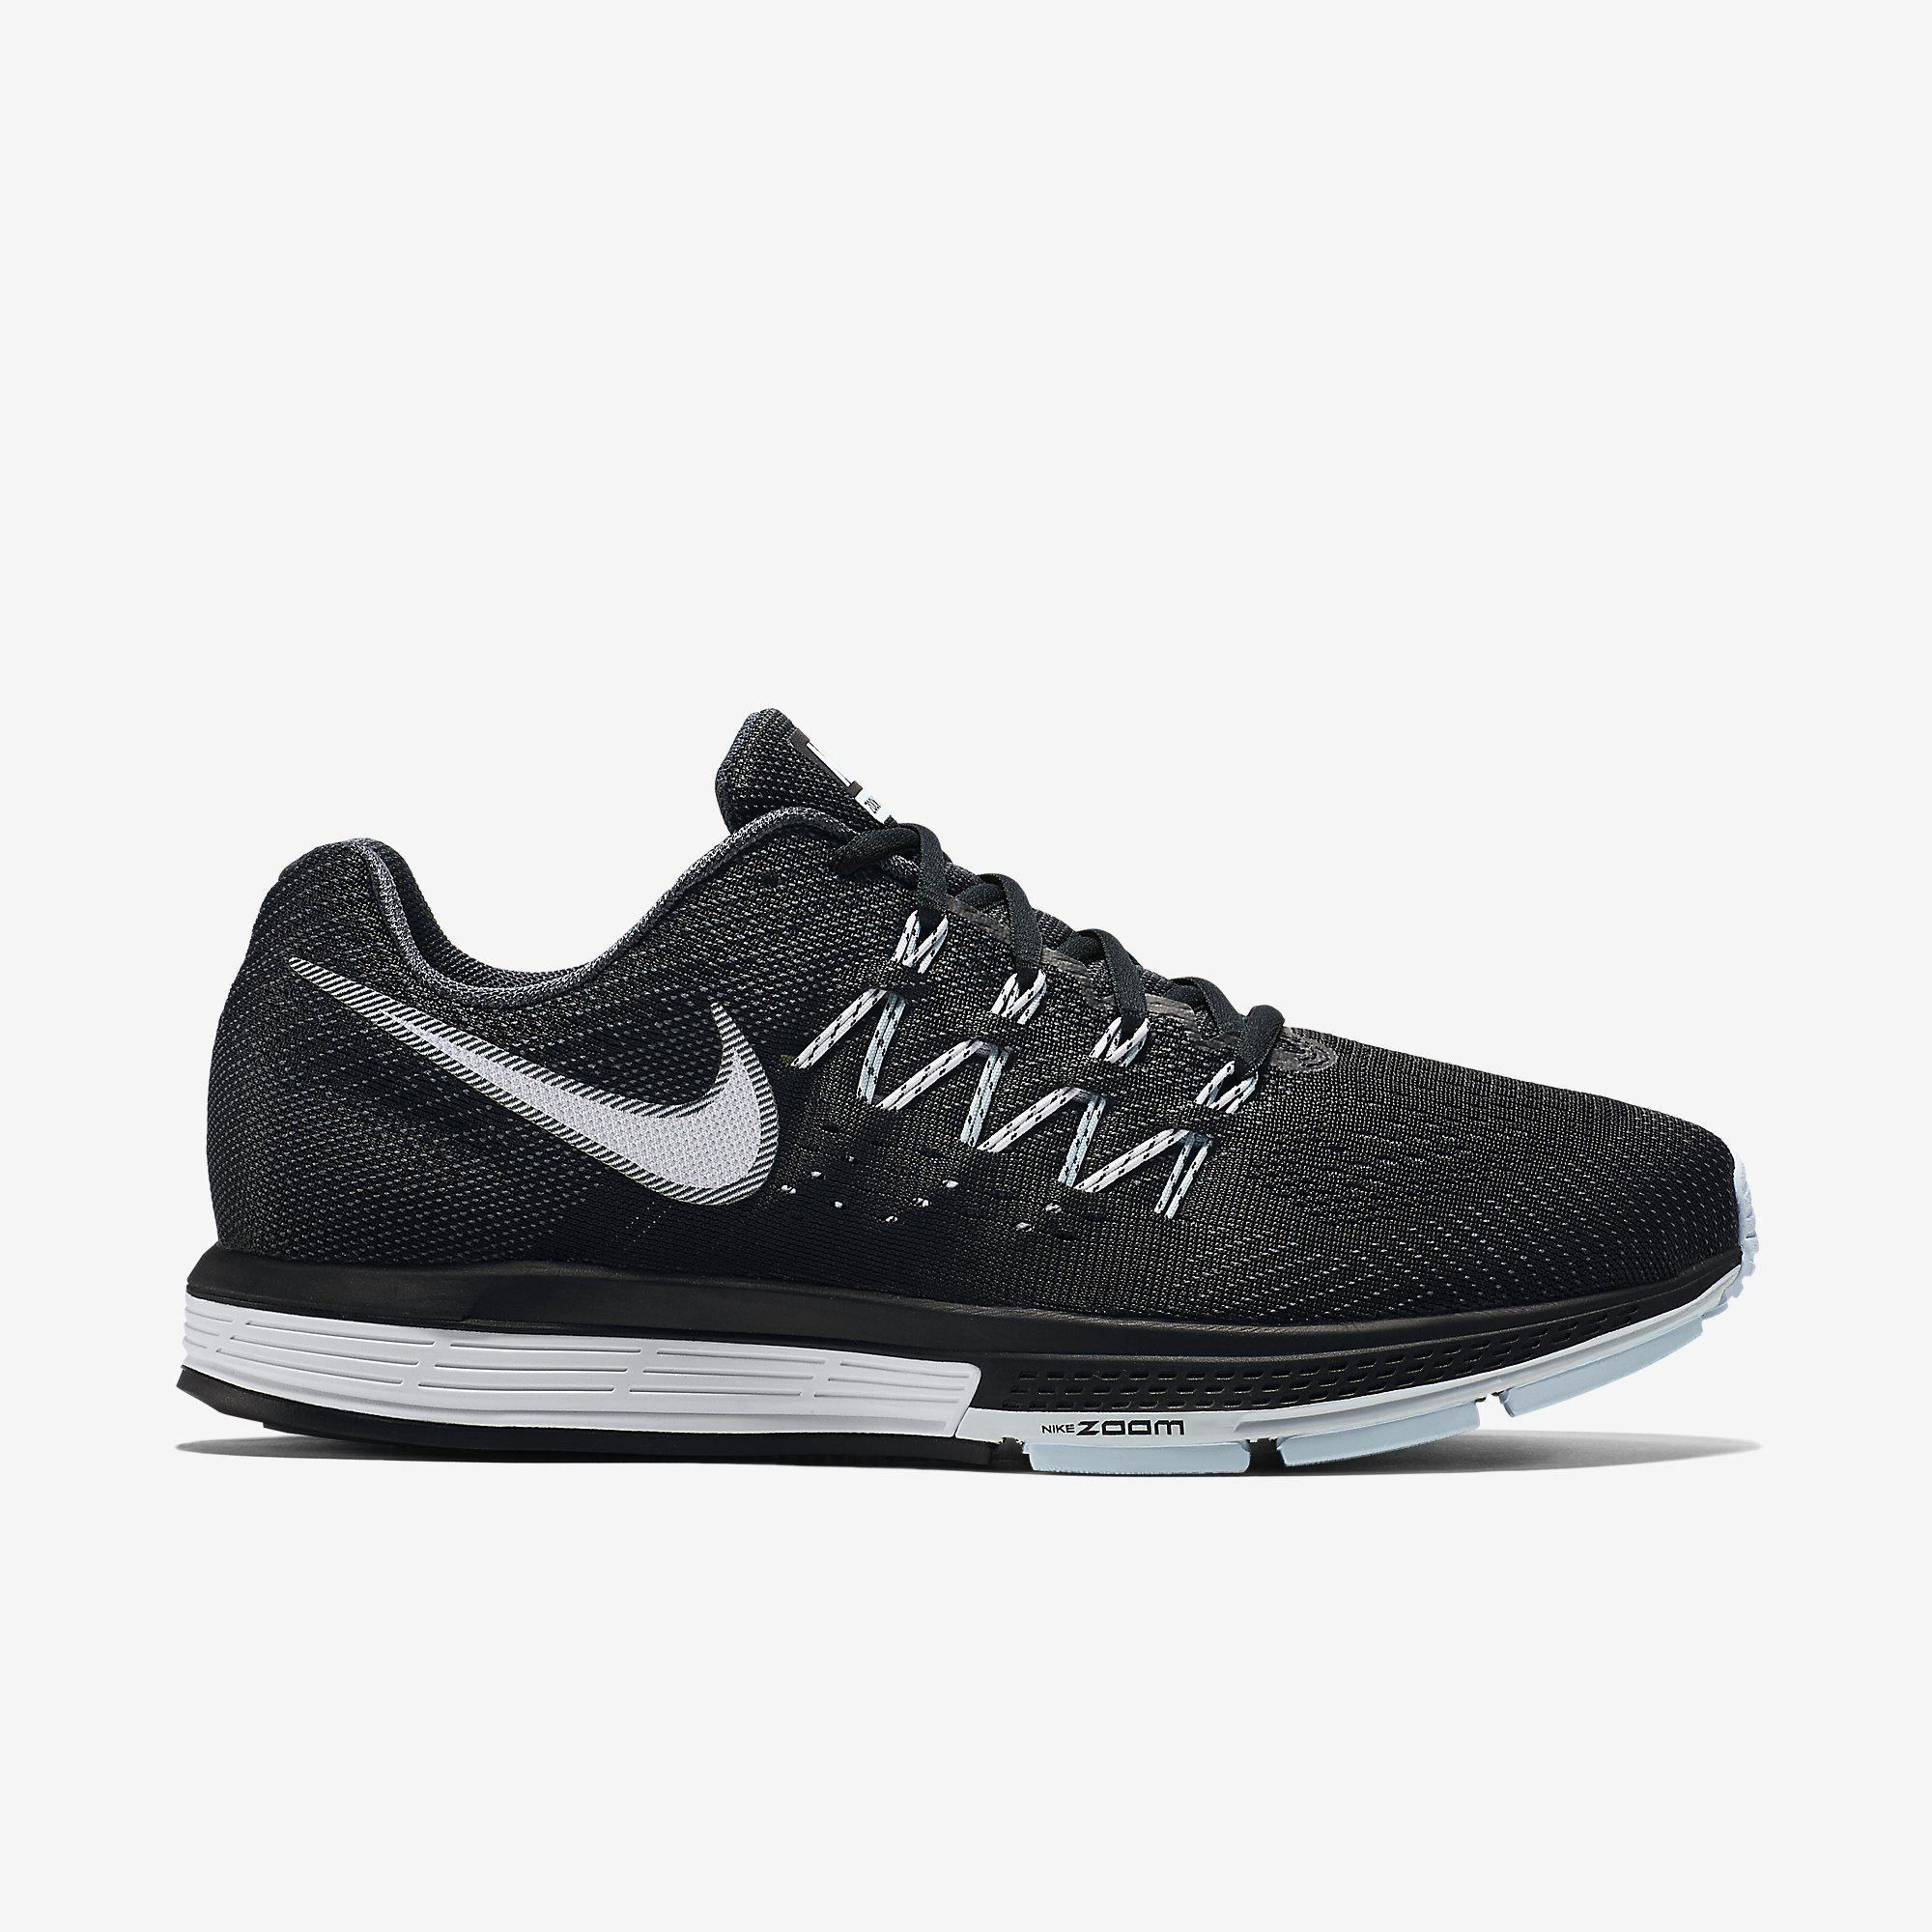 Nike Mens Air Zoom Vomero 10 Running Shoes - Charcoal